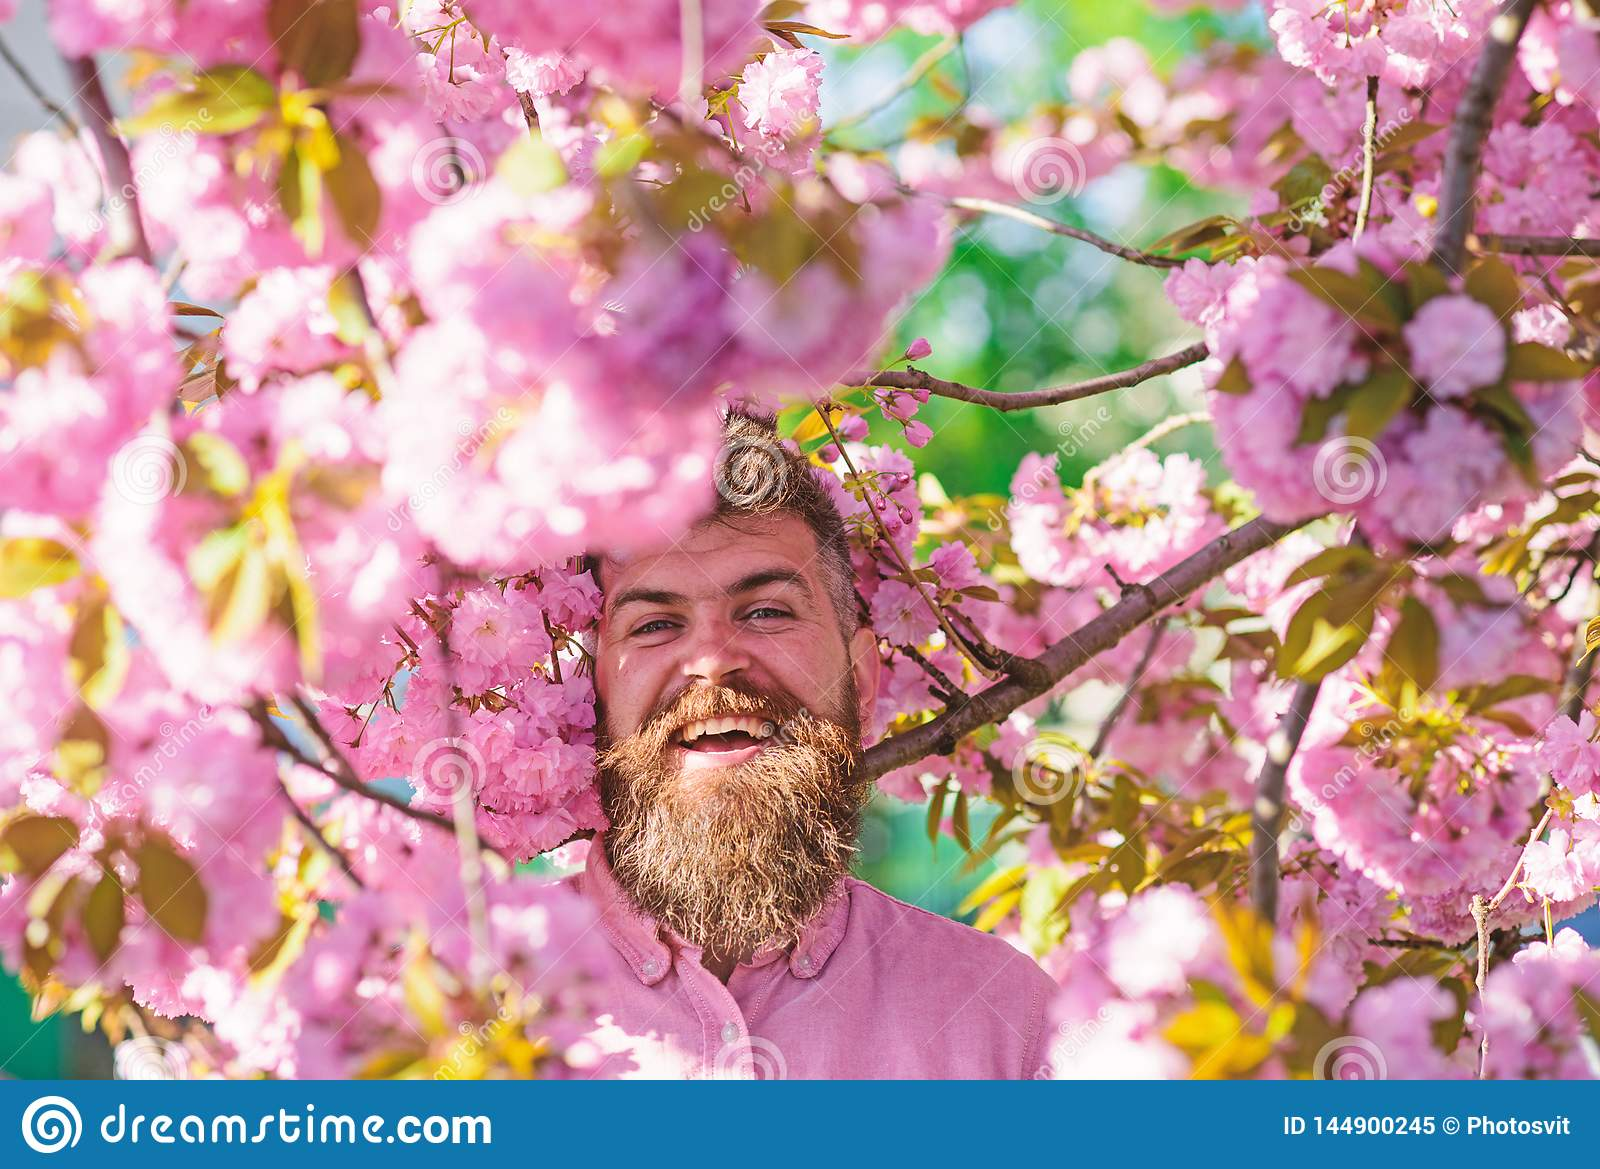 Bearded man with stylish haircut with sakura flowers on background. Man with beard and mustache on smiling face near